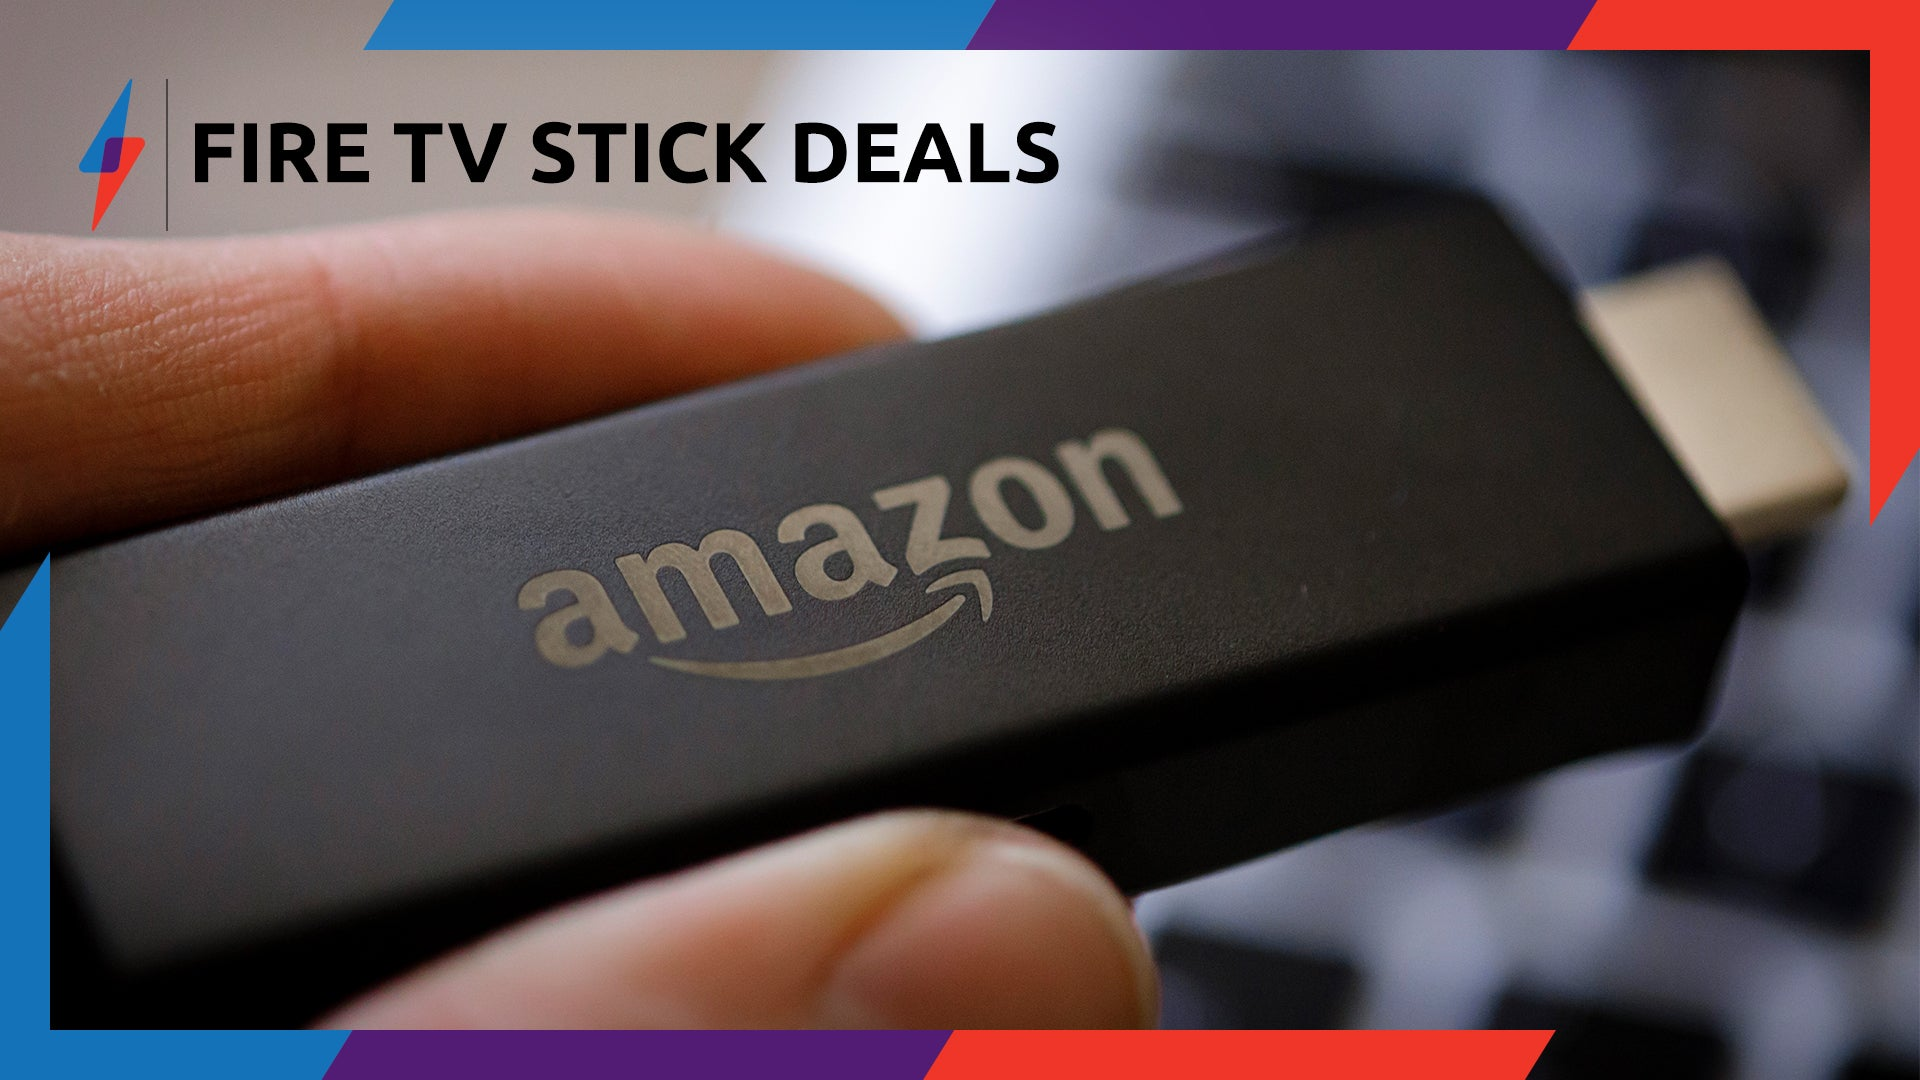 Best Fire TV Stick Deals for Amazon Prime Day UK 2019: Day 2's Deals Live Now